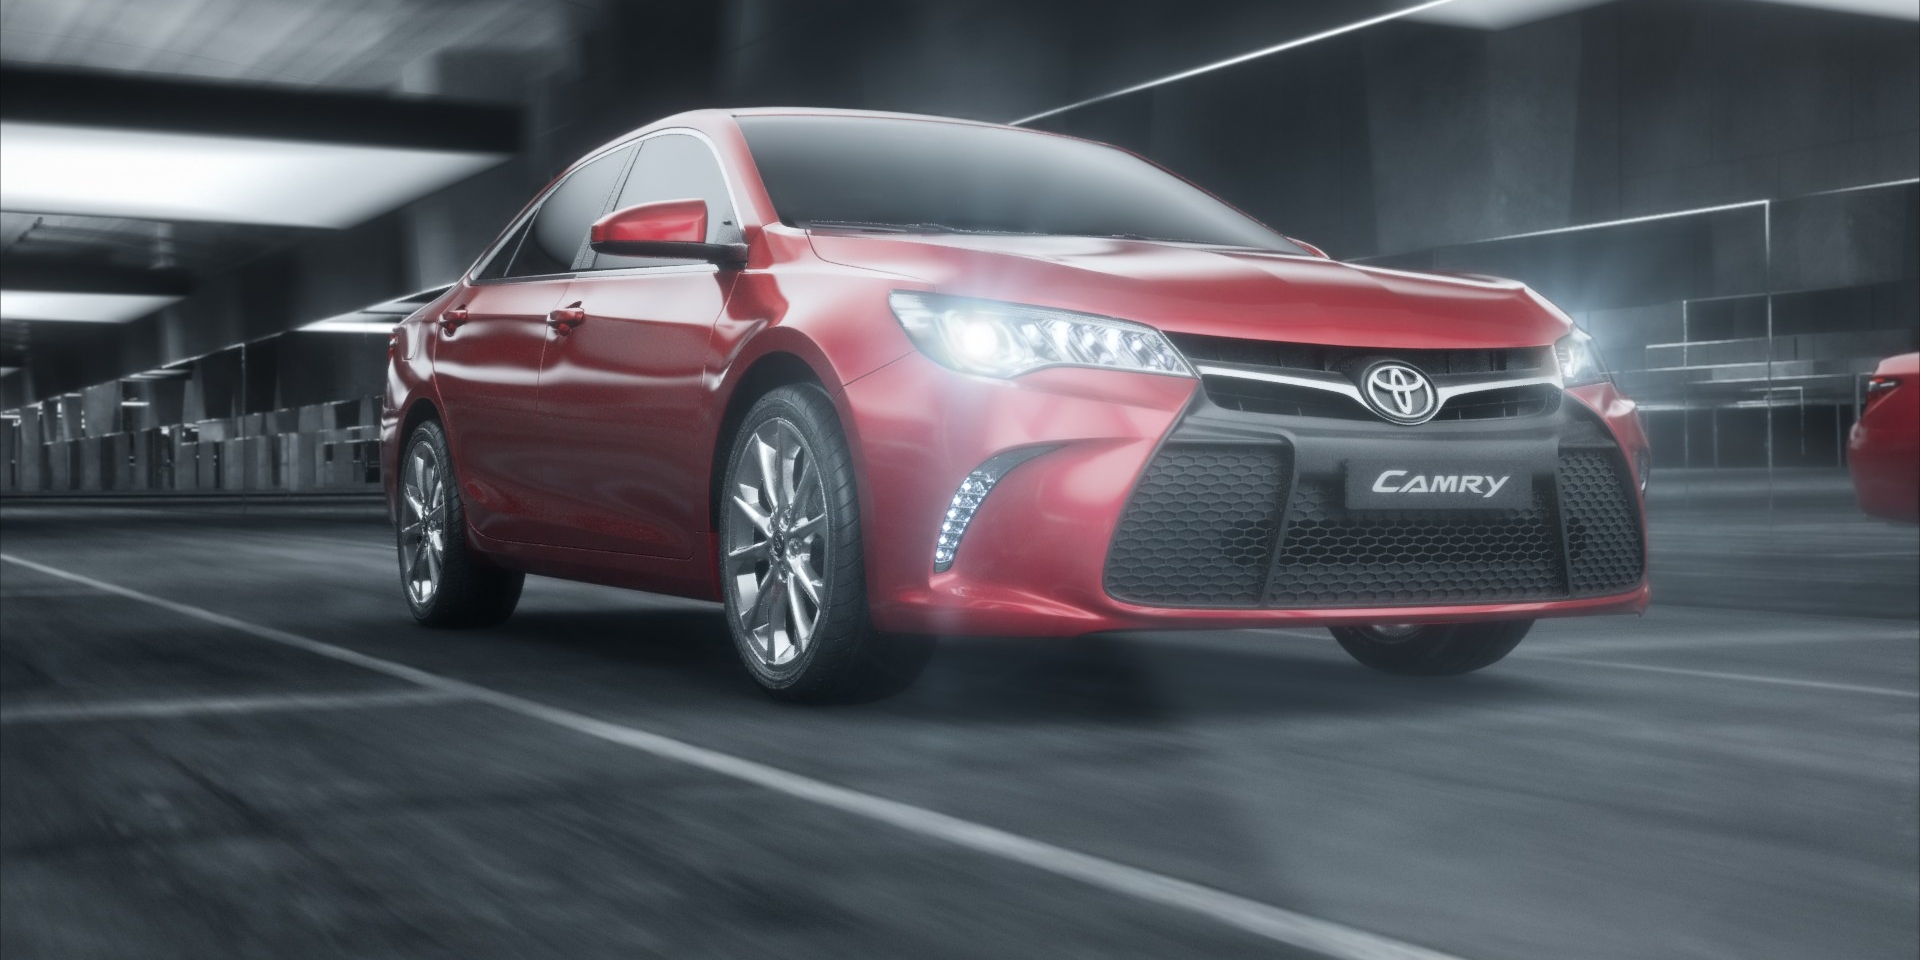 Toyota Camry Campaign 2016